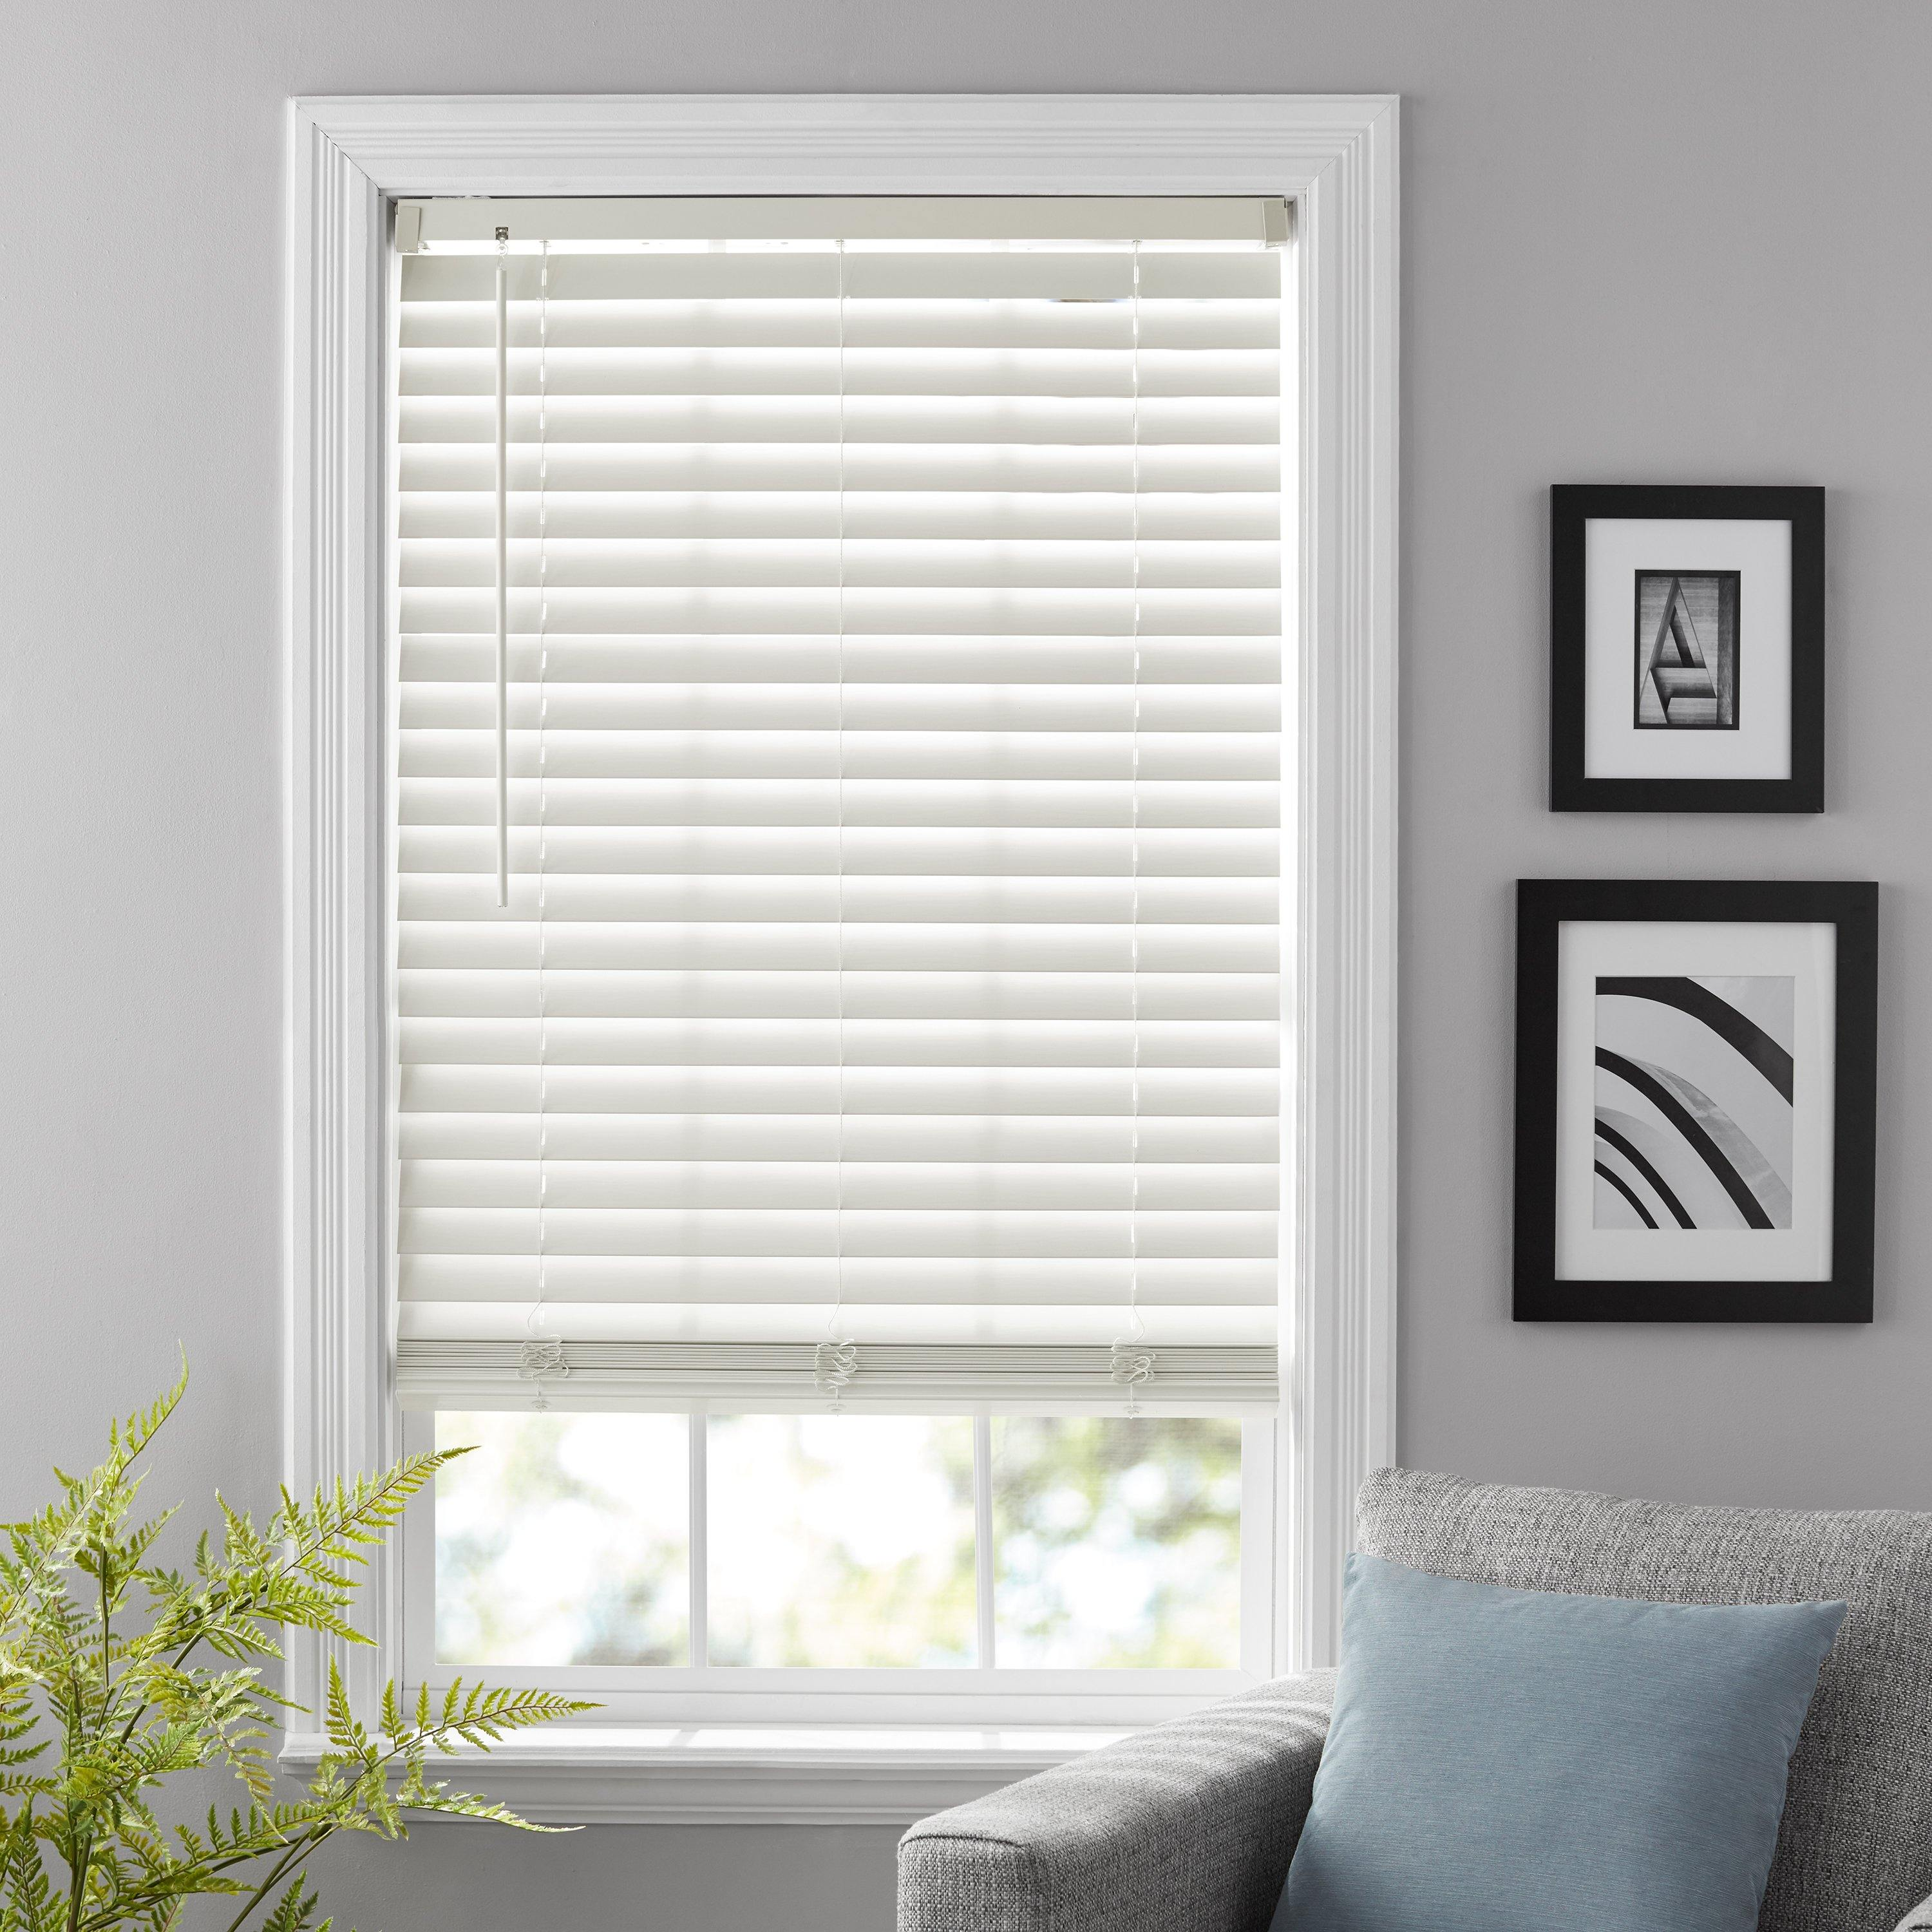 Better Homes & Gardens 2-Inch Cordless Faux Wood Blinds, Antique White, 23 x 64 in.